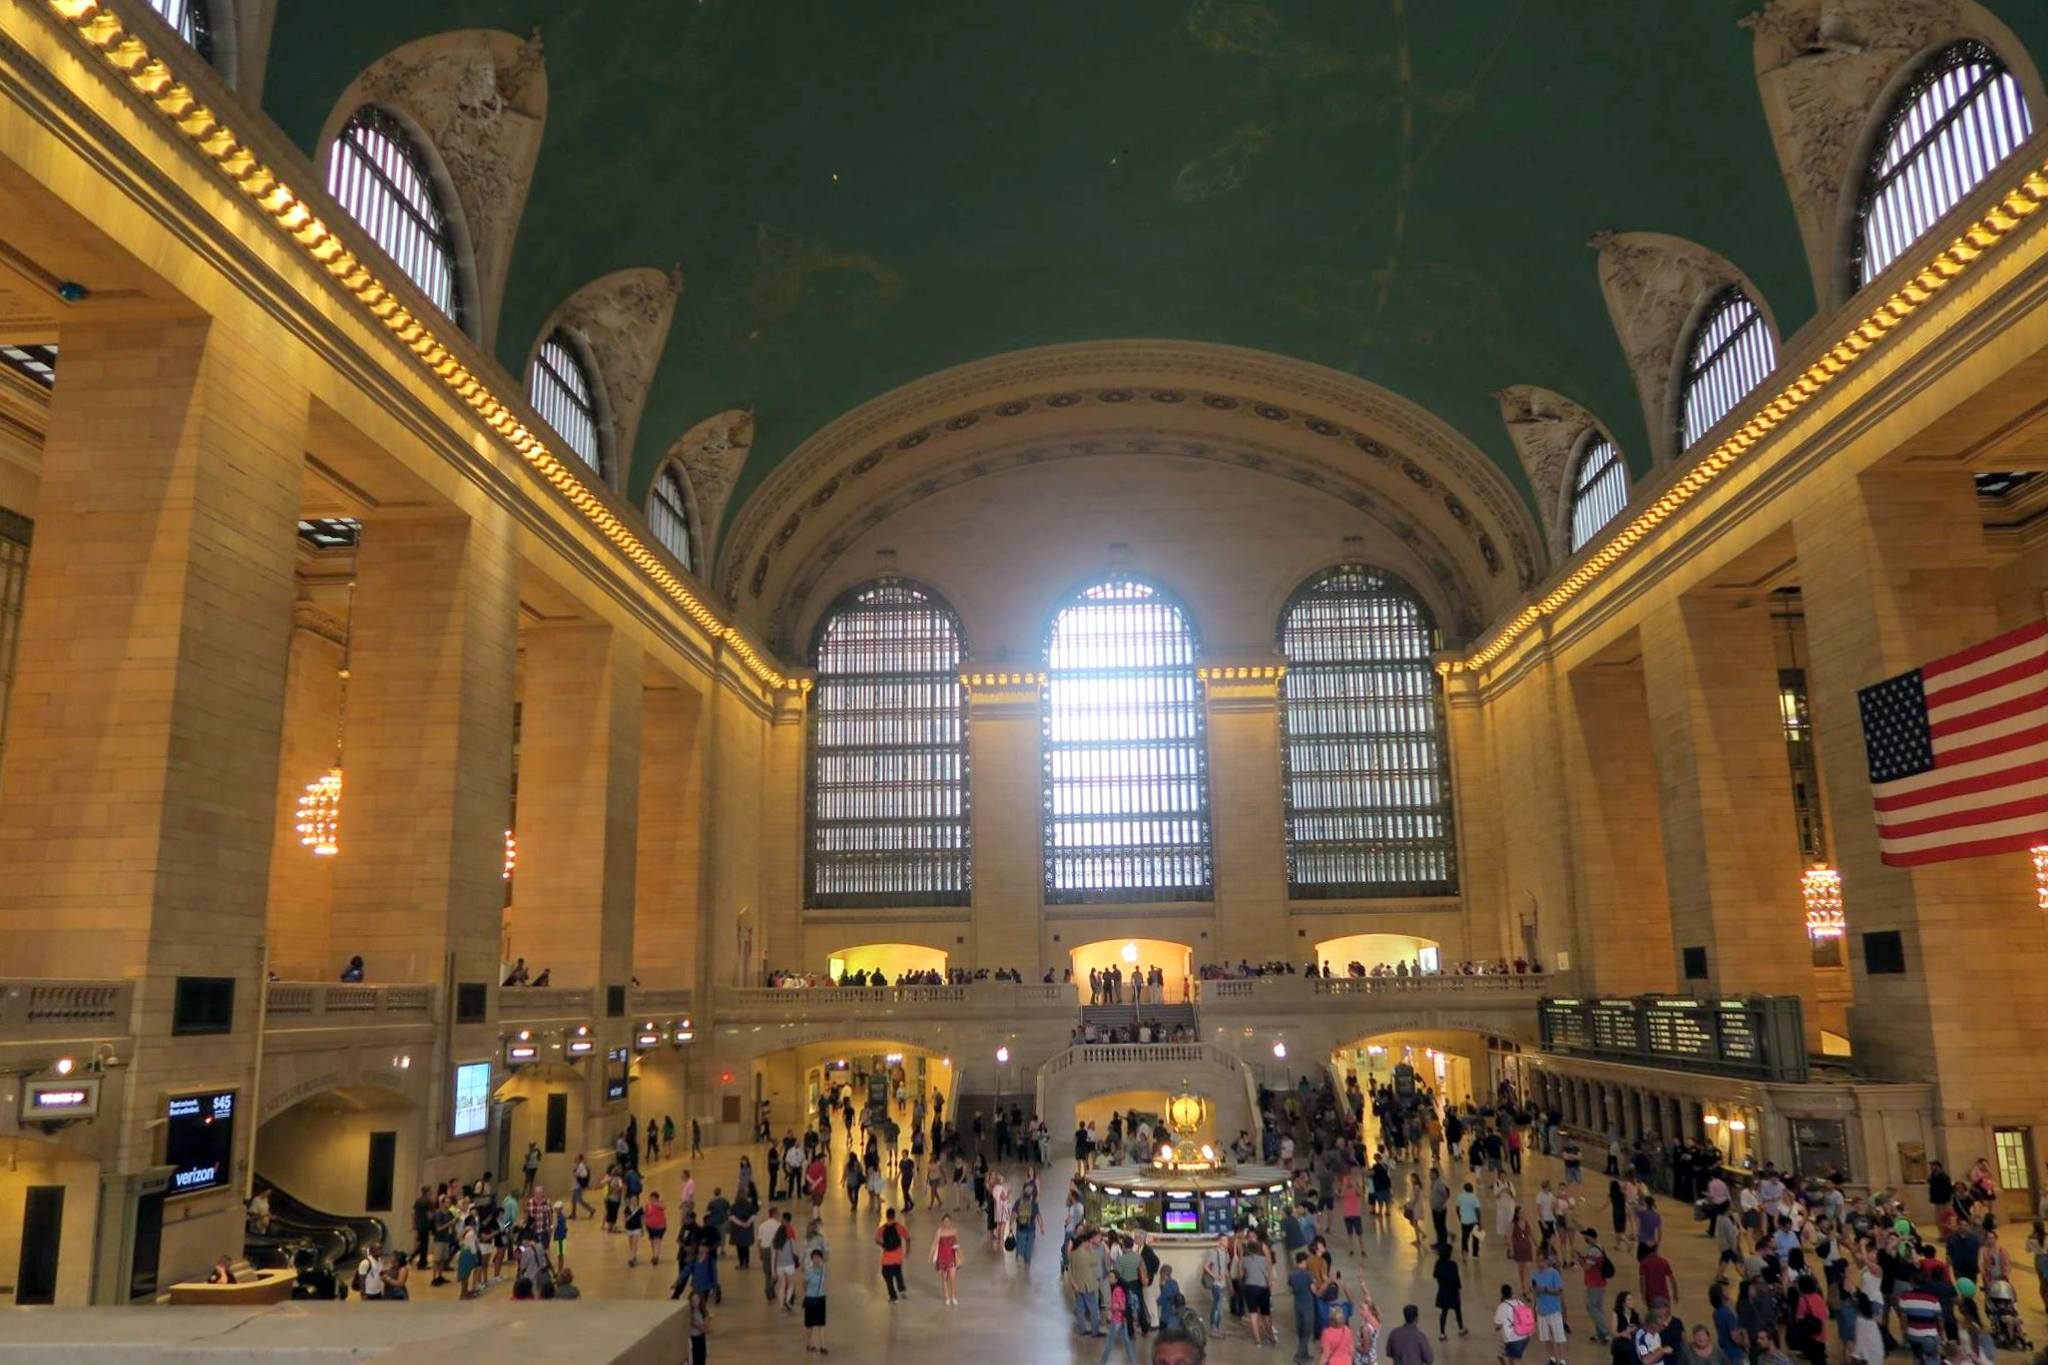 The grand concourse in Grand Central Station